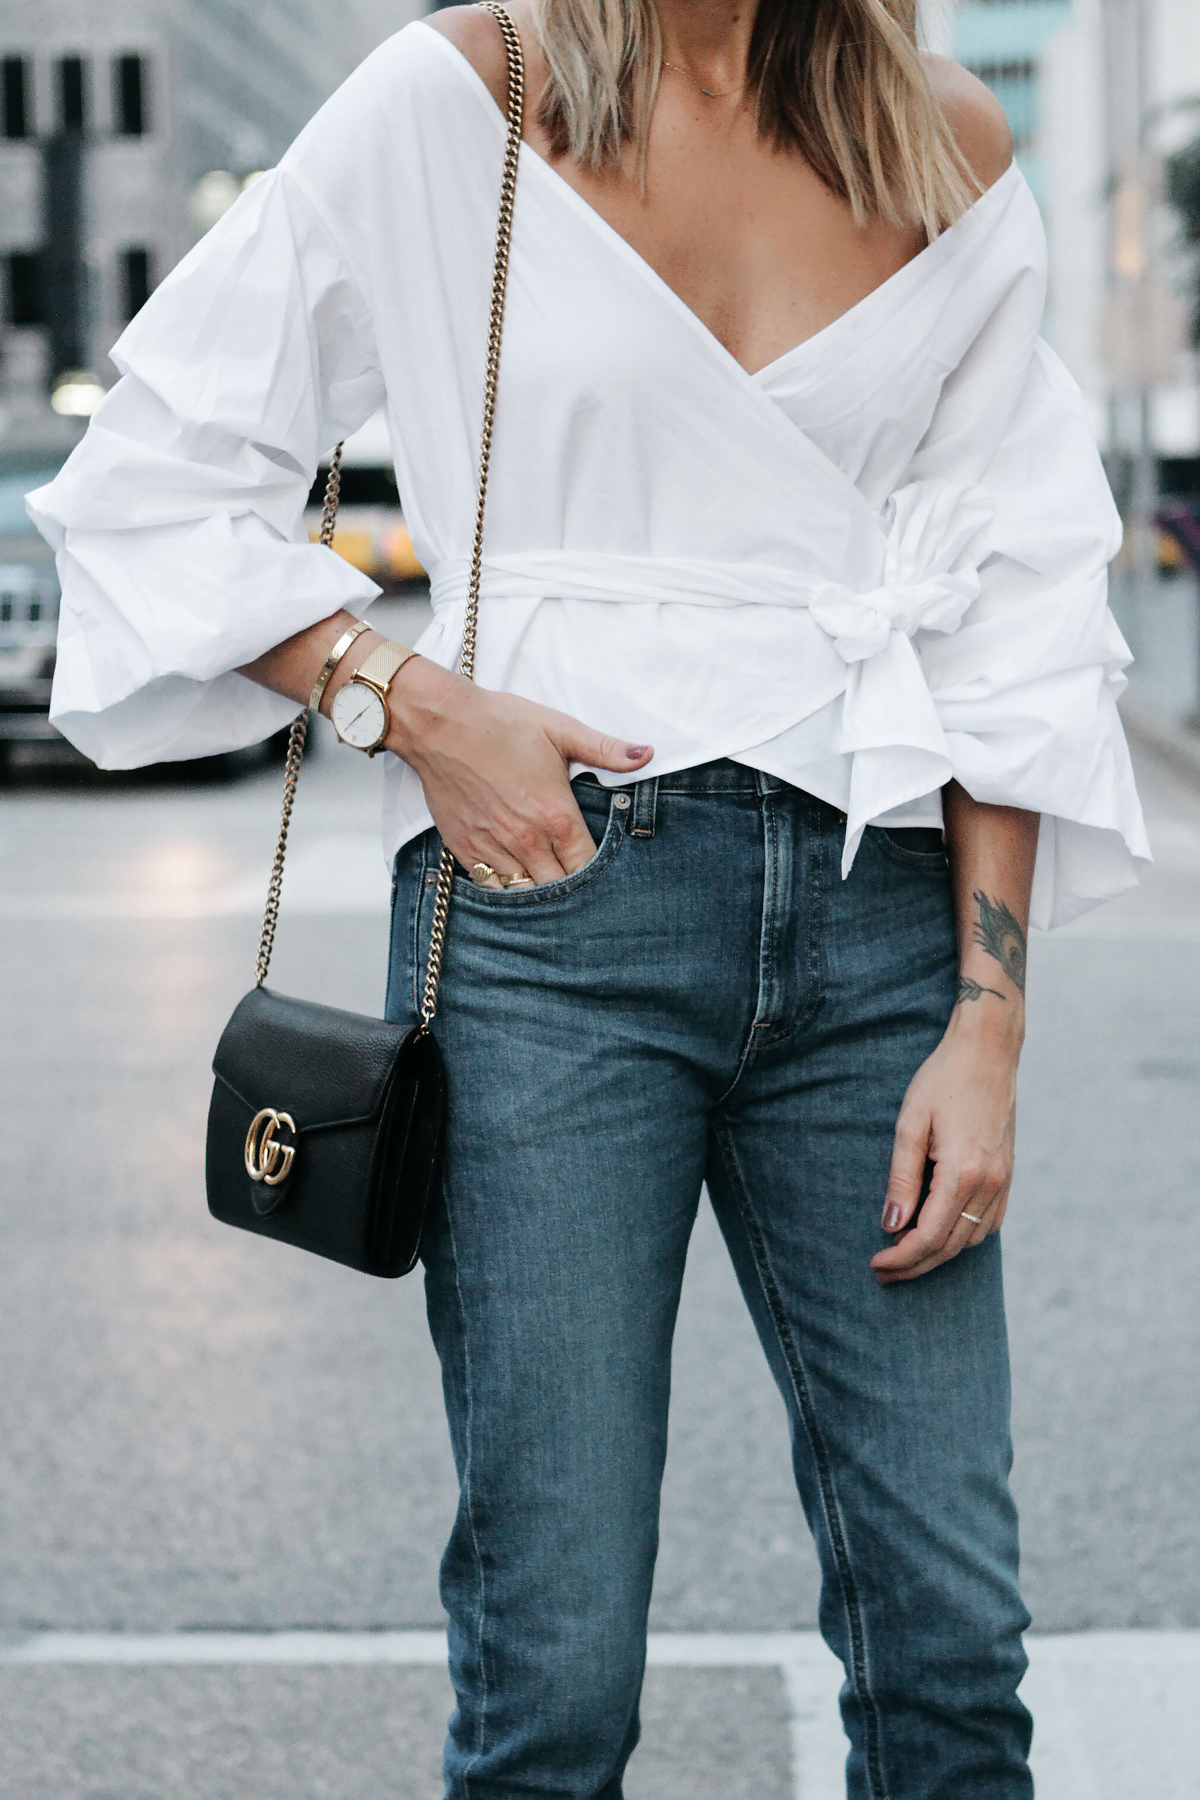 Club Monaco White Ruffle Sleeve Wrap Top Gucci Marmont Handbag Everlane Boyfriend Jeans Fashion Jackson Dallas Blogger Fashion Blogger Street Style